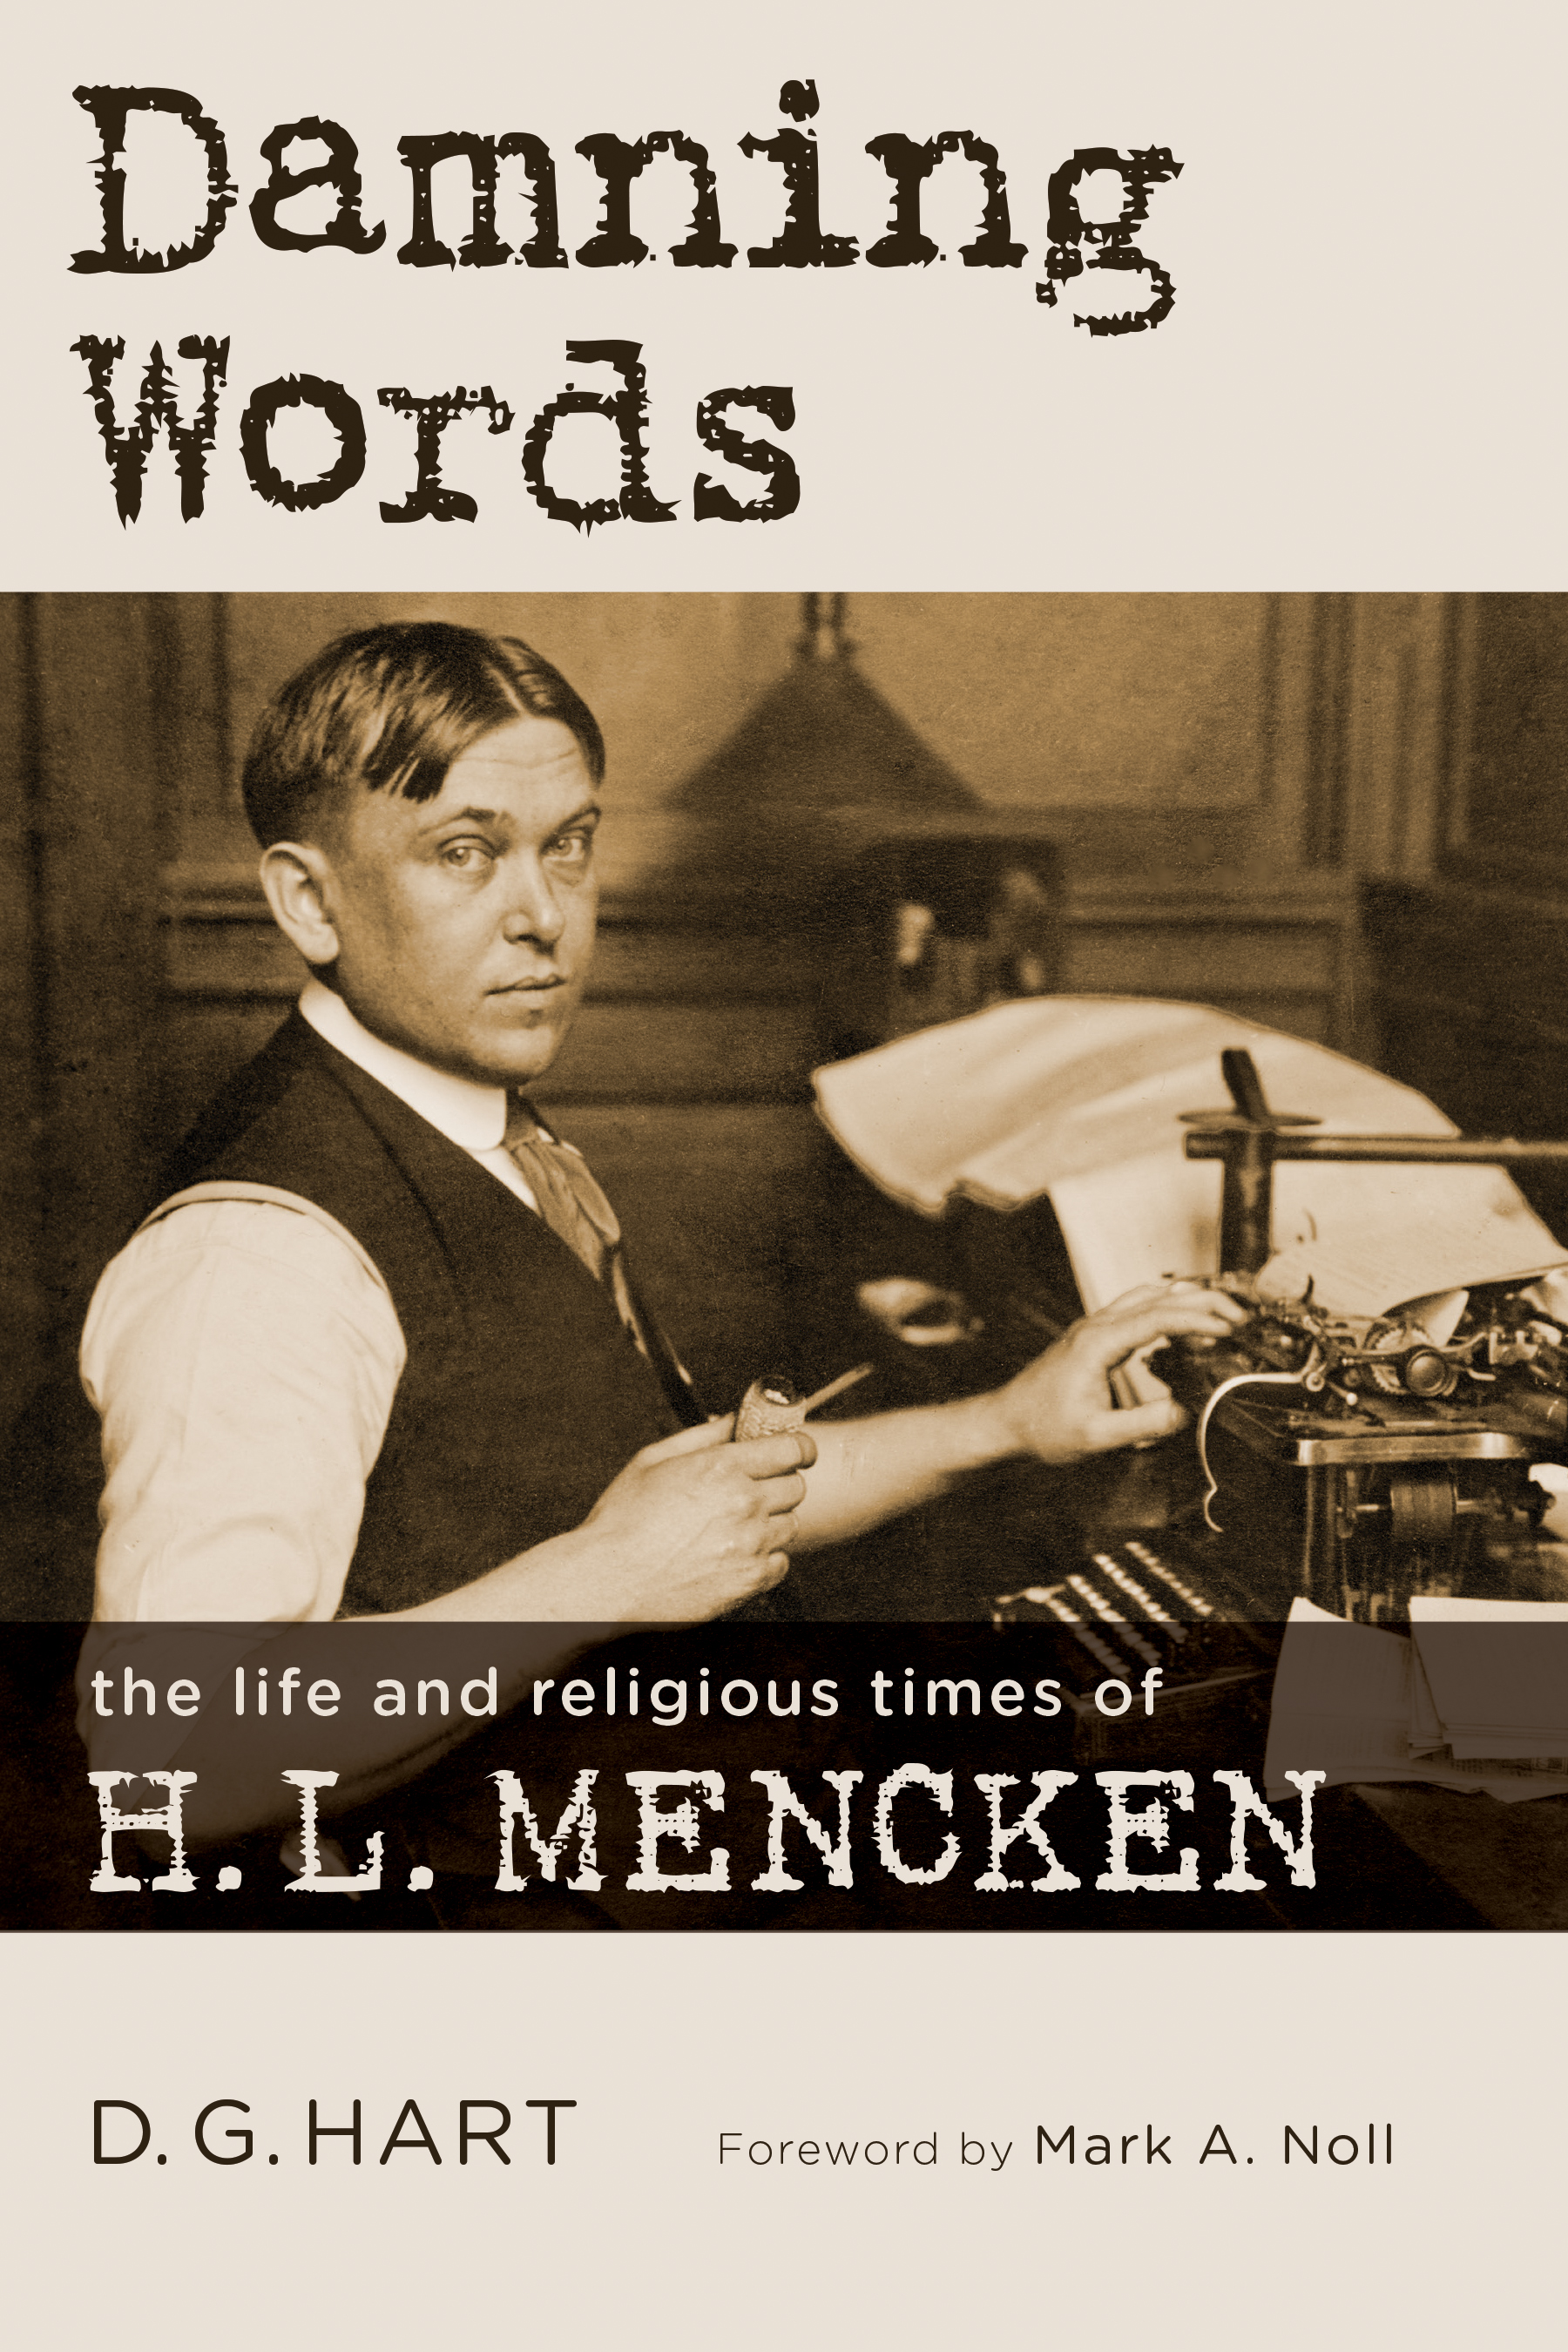 new from d g hart damning words the life and religious times new from d g hart damning words the life and religious times of h l mencken the heidelblog